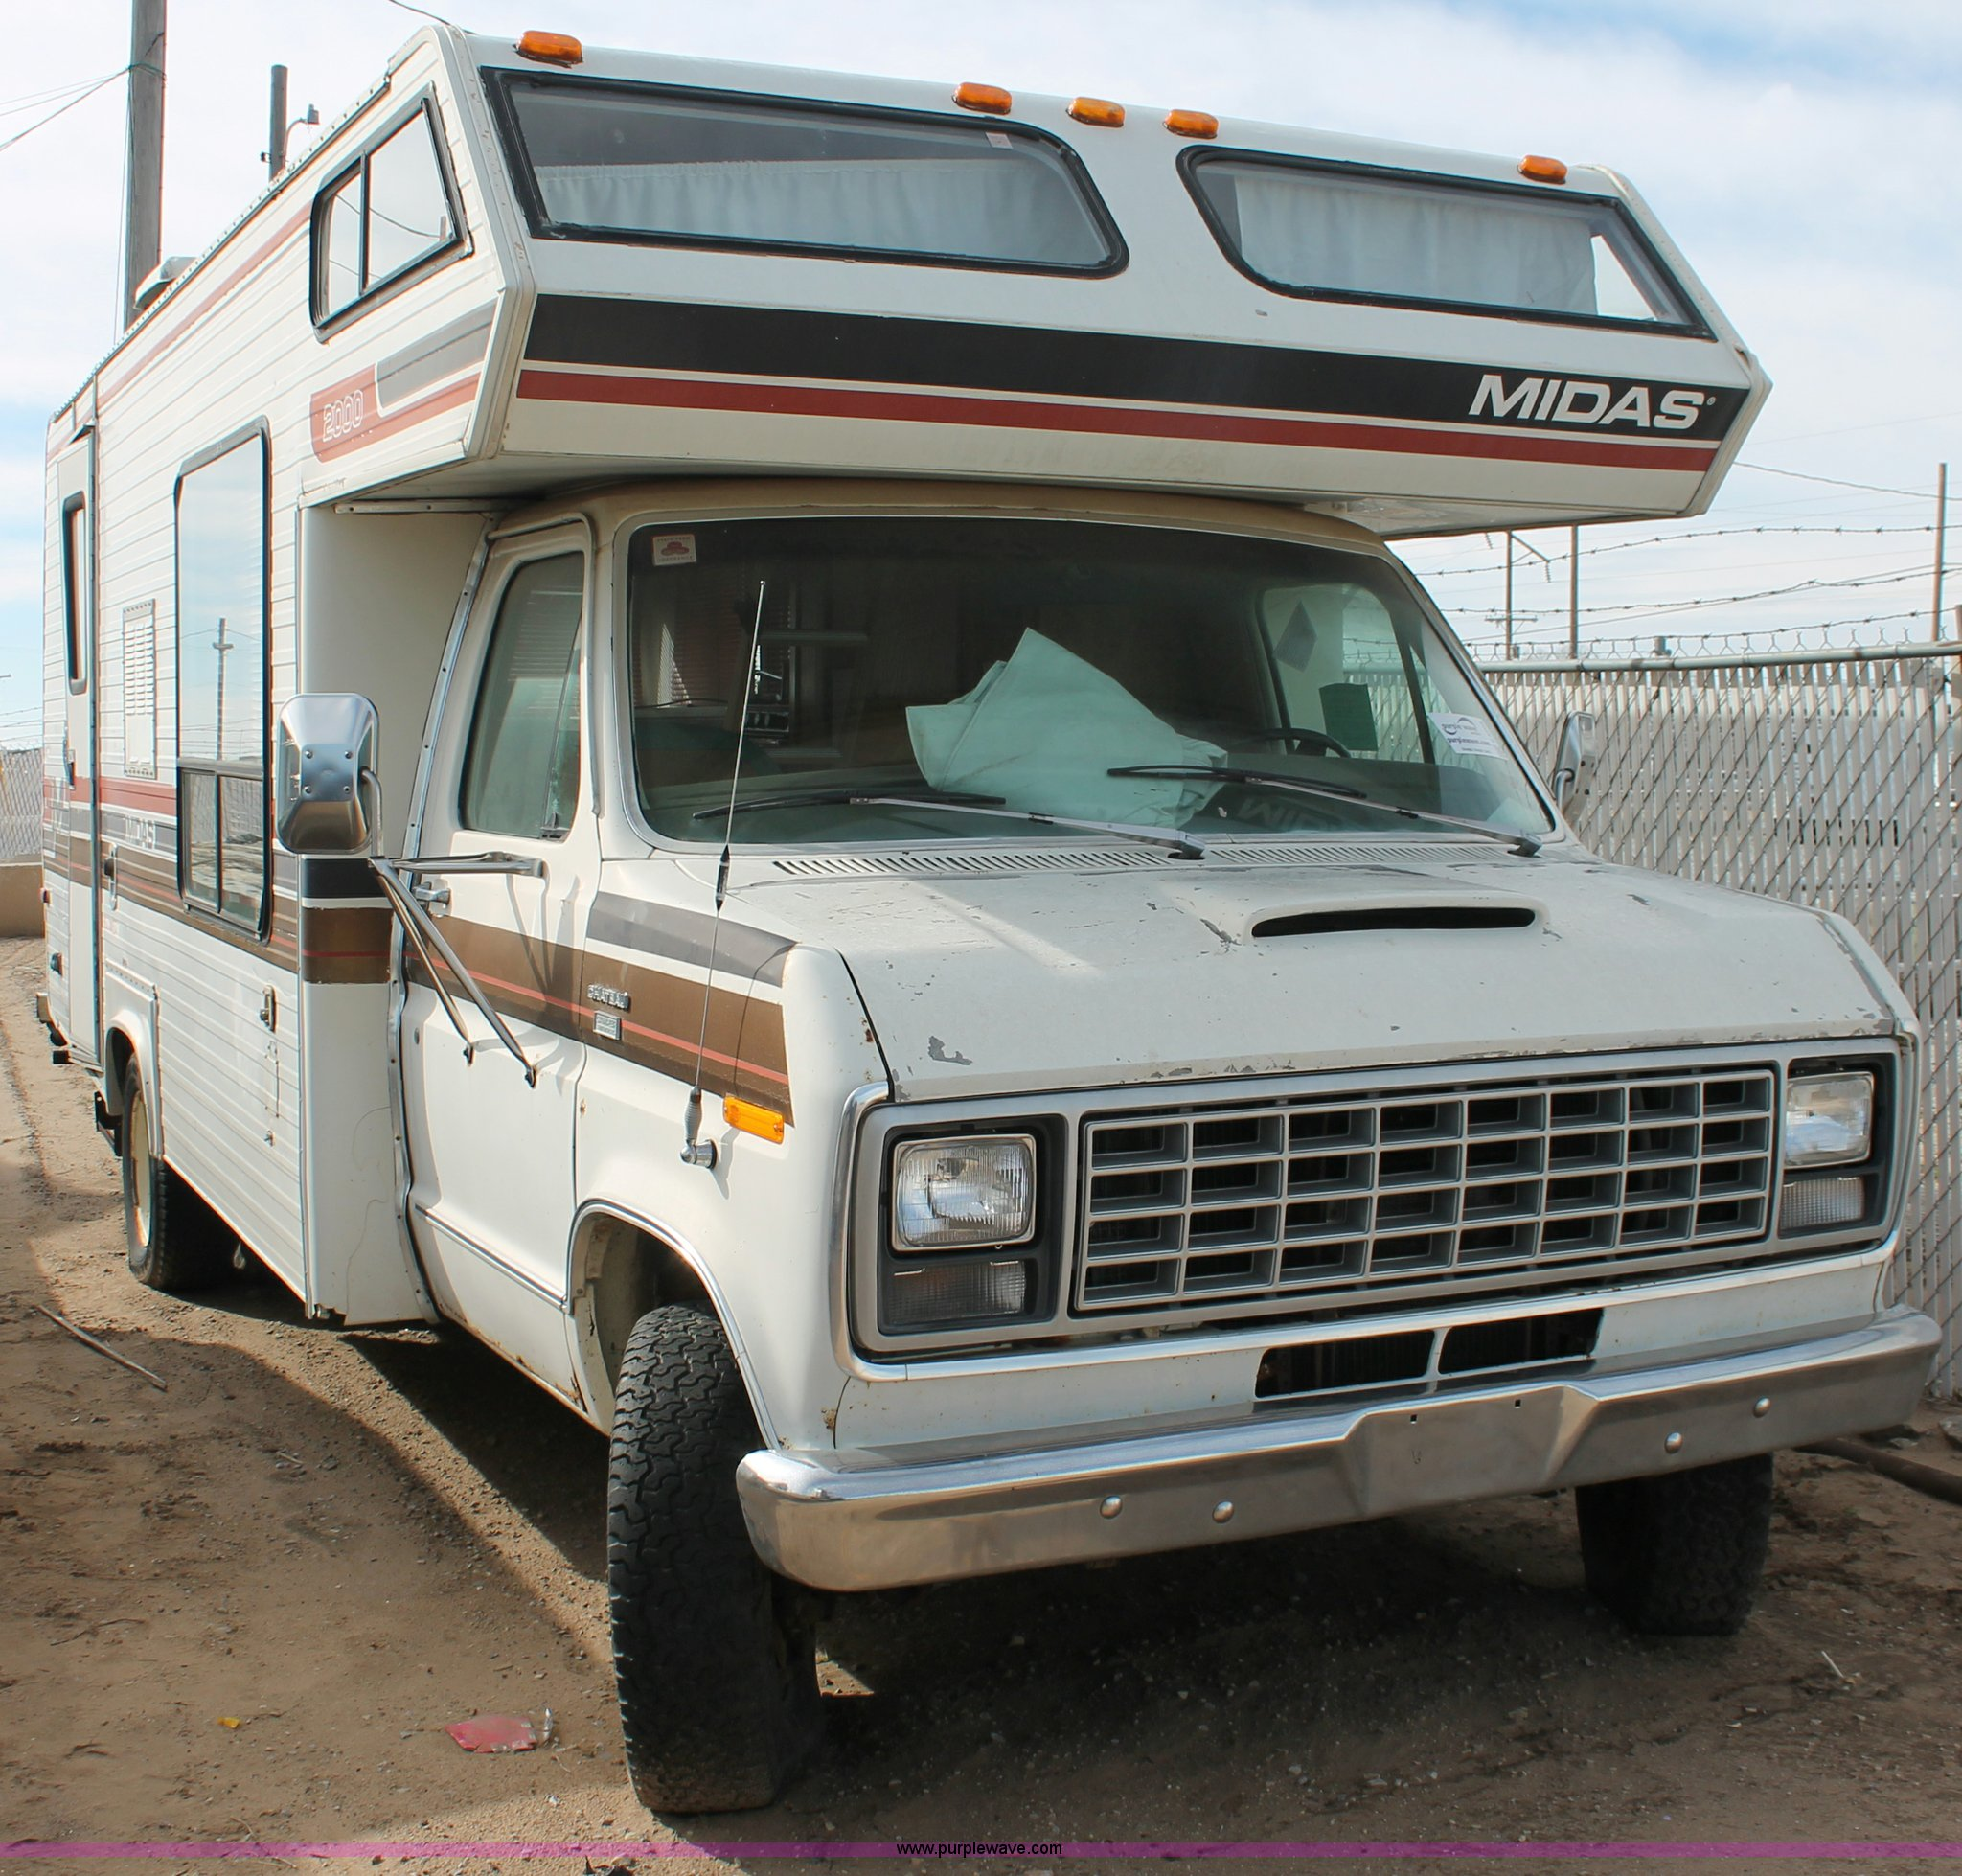 1979 Ford Midas 2000 Chateau Camper Special Motorhome In